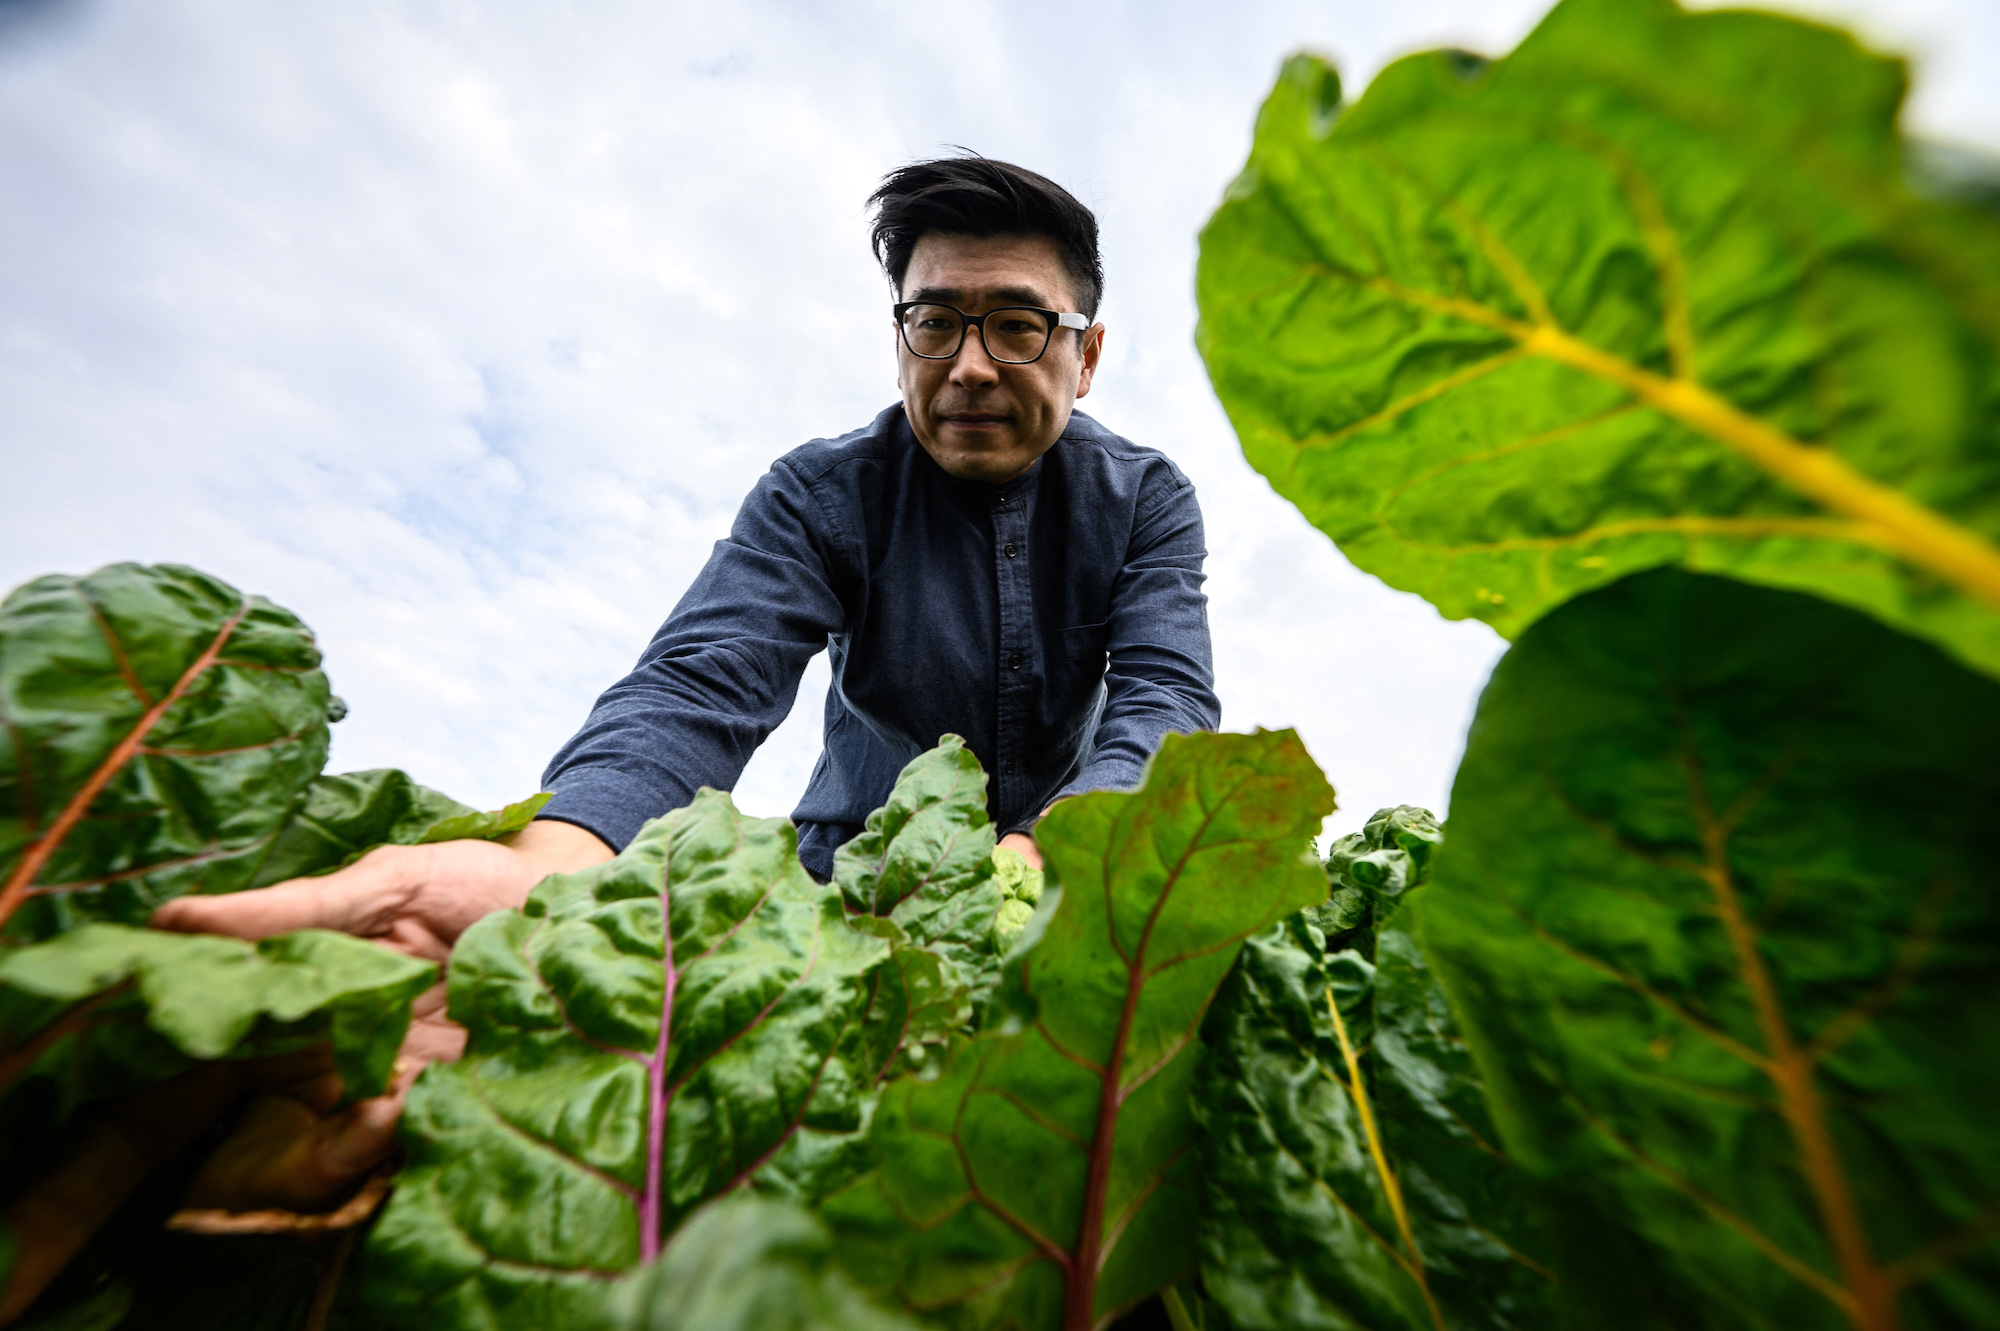 One of Hong Kong's prominent advocate of urban farming Andrew Tsui